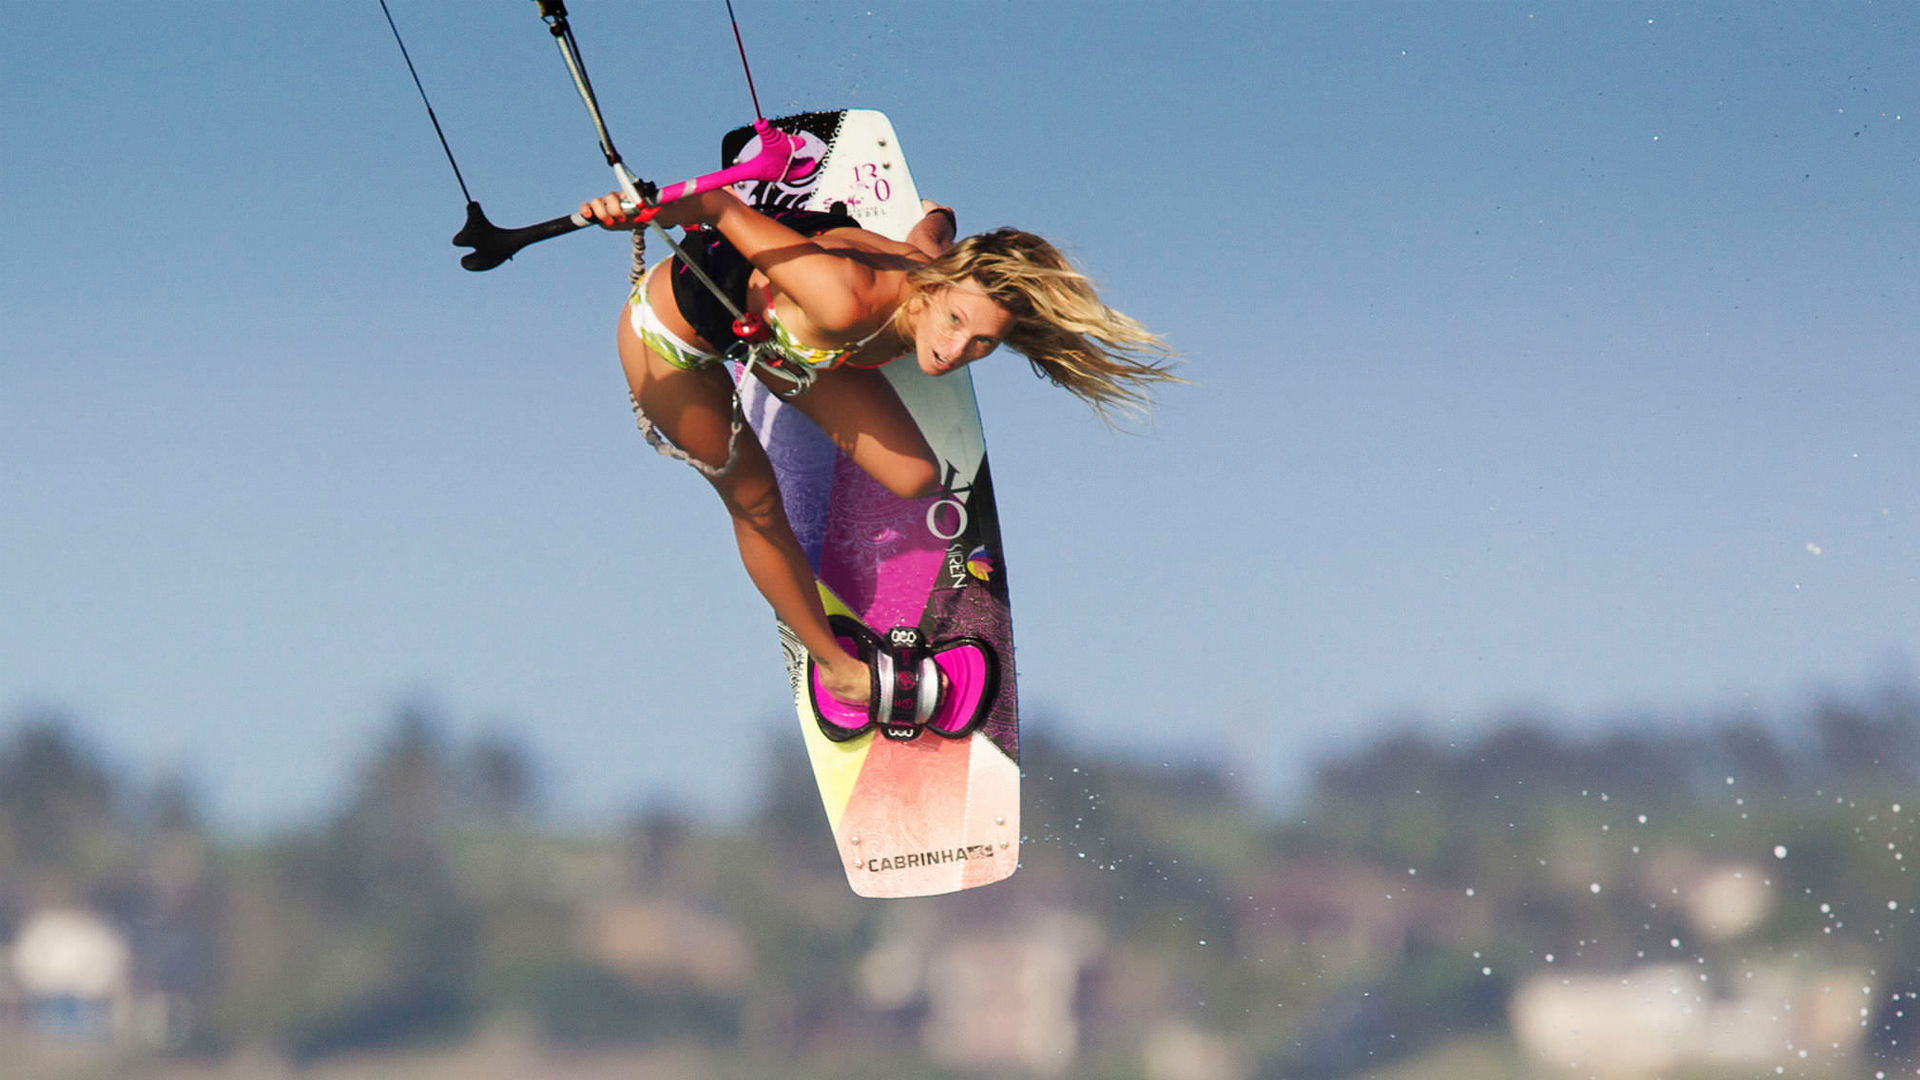 kitesurf wallpaper image - Susi Mai showing how it's done. - in resolution: High Definition - HD 16:9 1920 X 1080